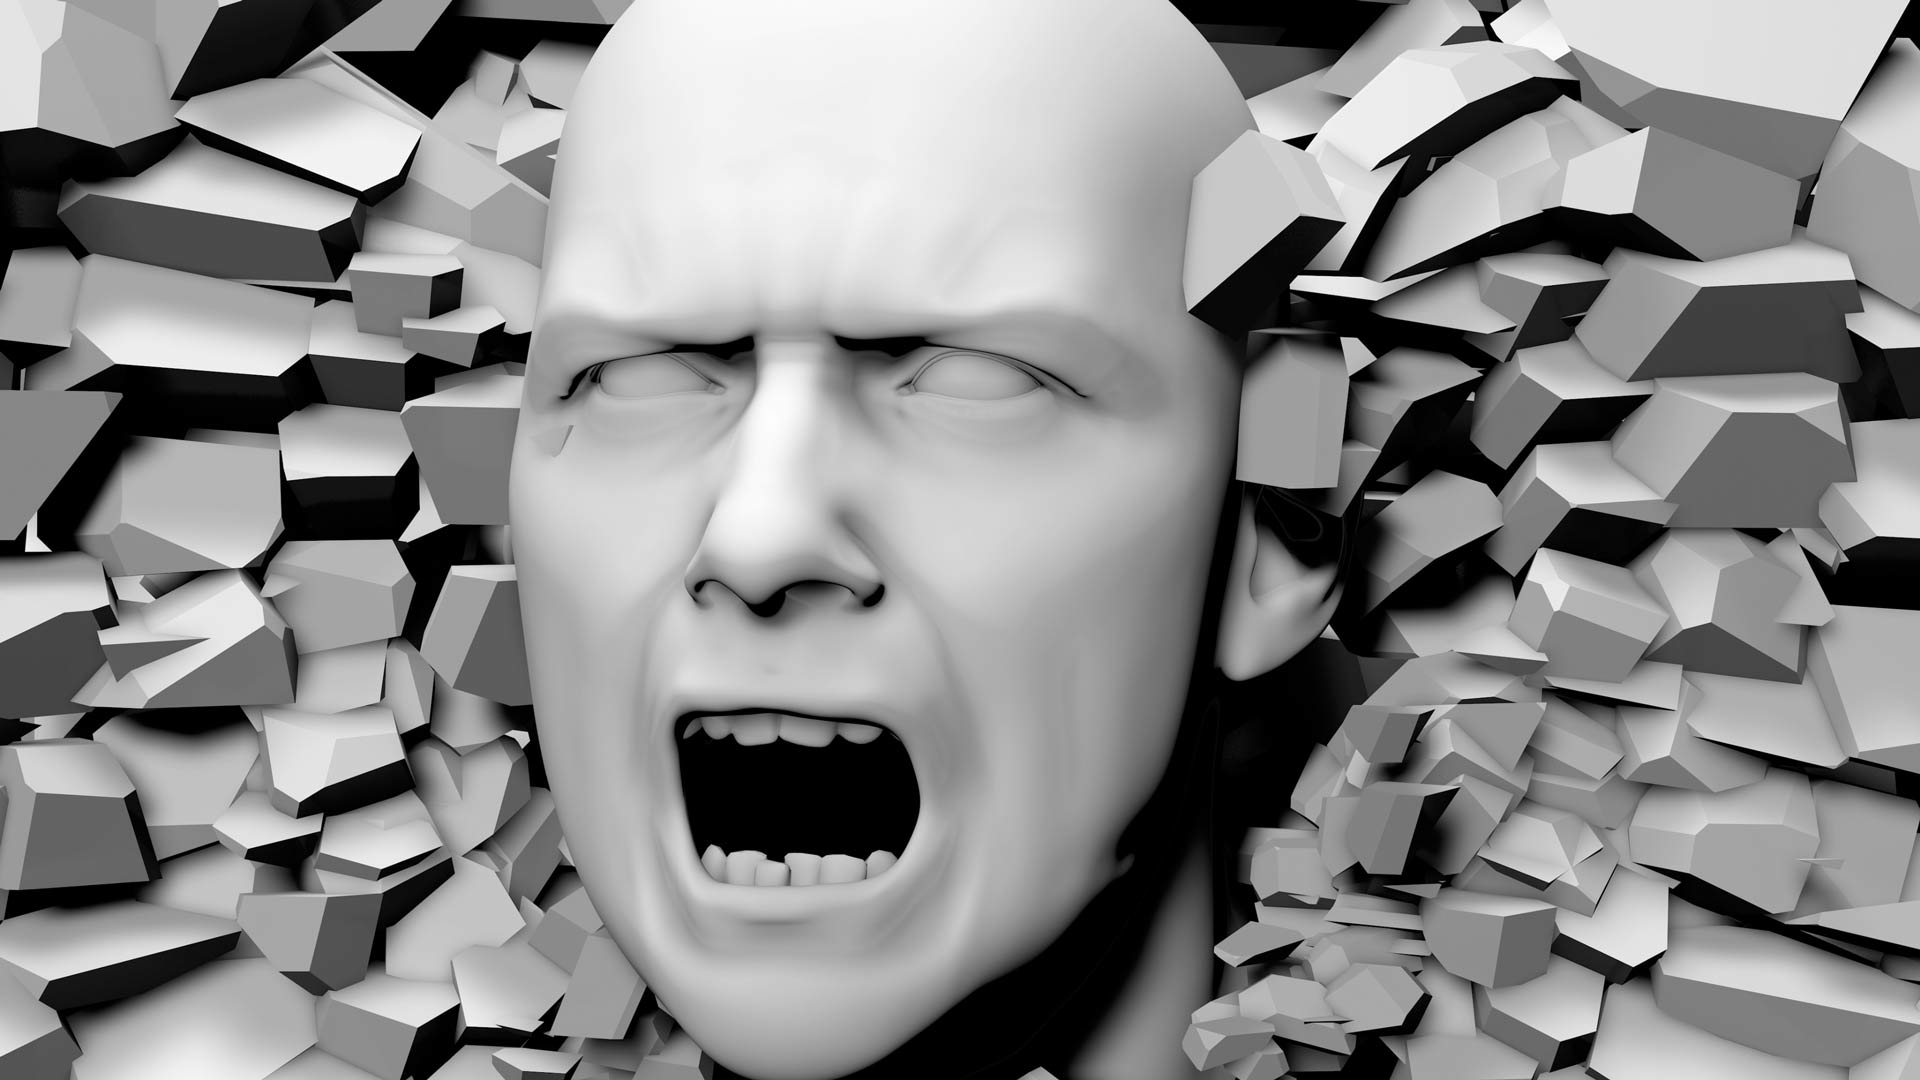 Projection-Mapping-Loops-HeadShock-FaceEffects